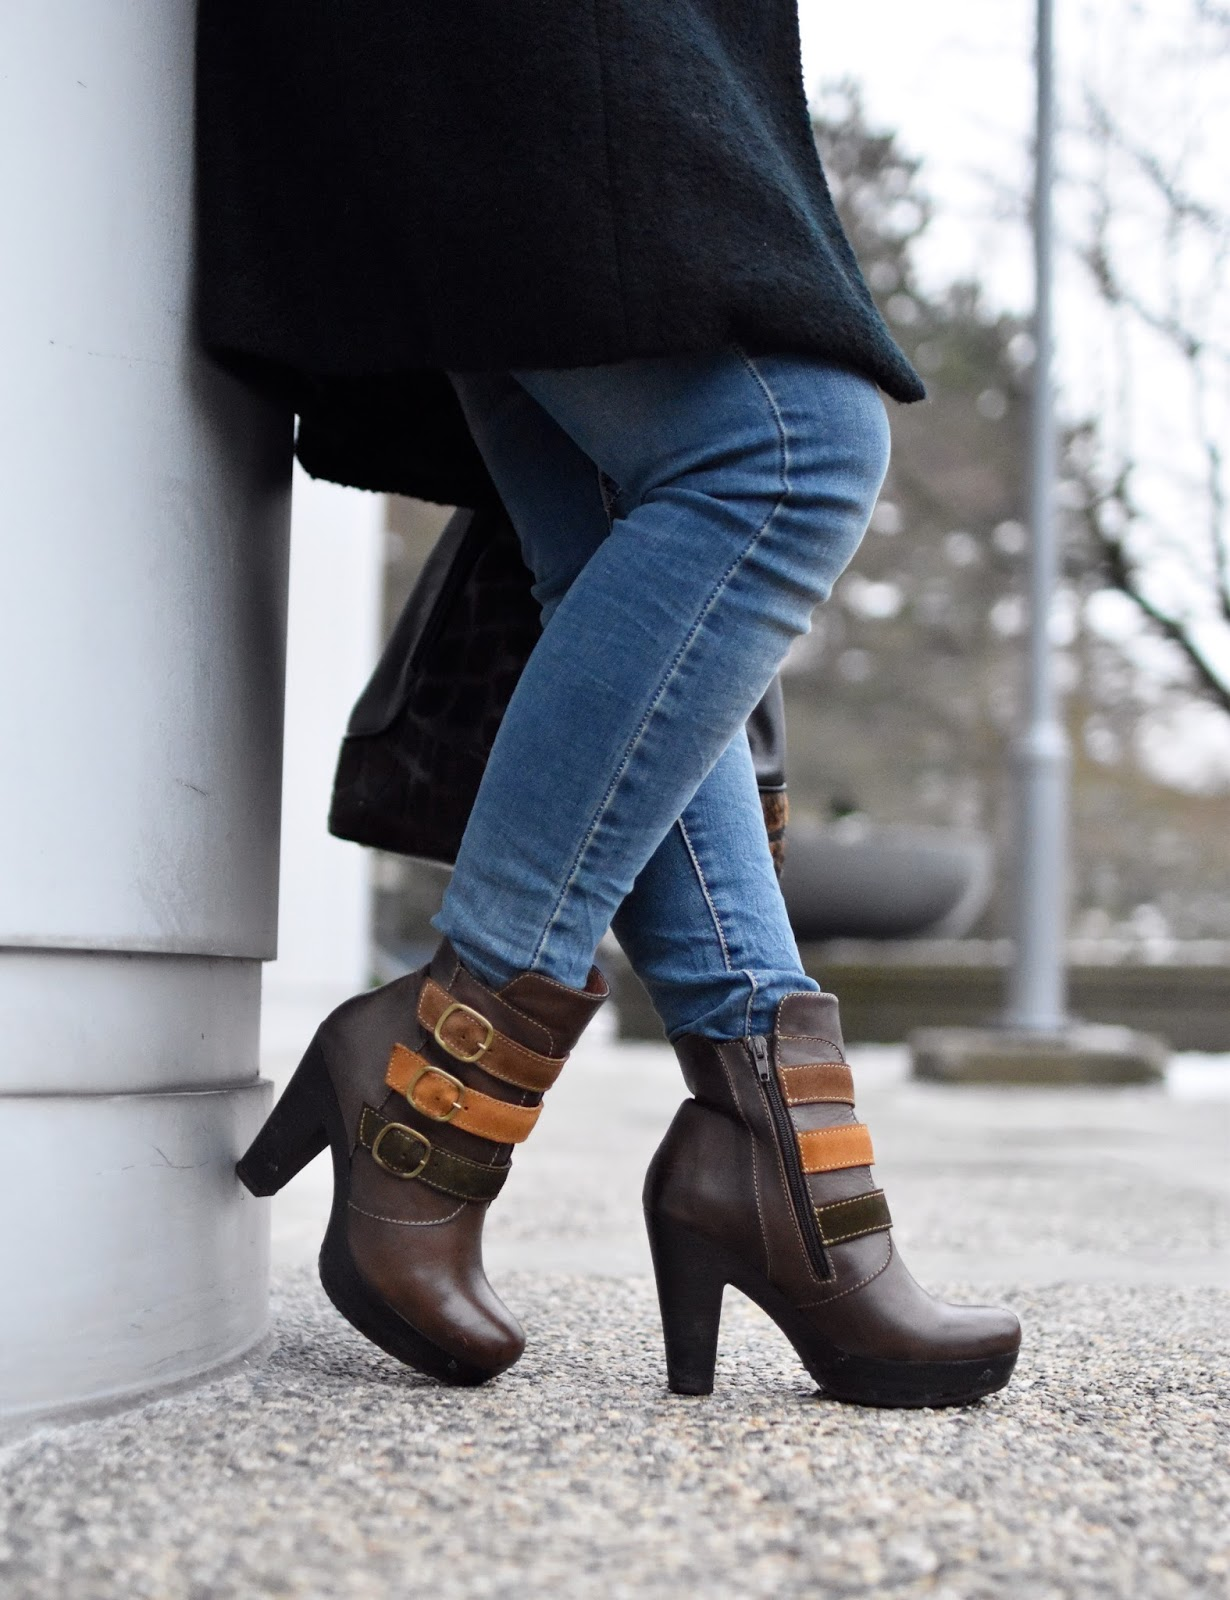 Monika Faulkner outfit inspiration - skinny jeans, platform booties with strap detail